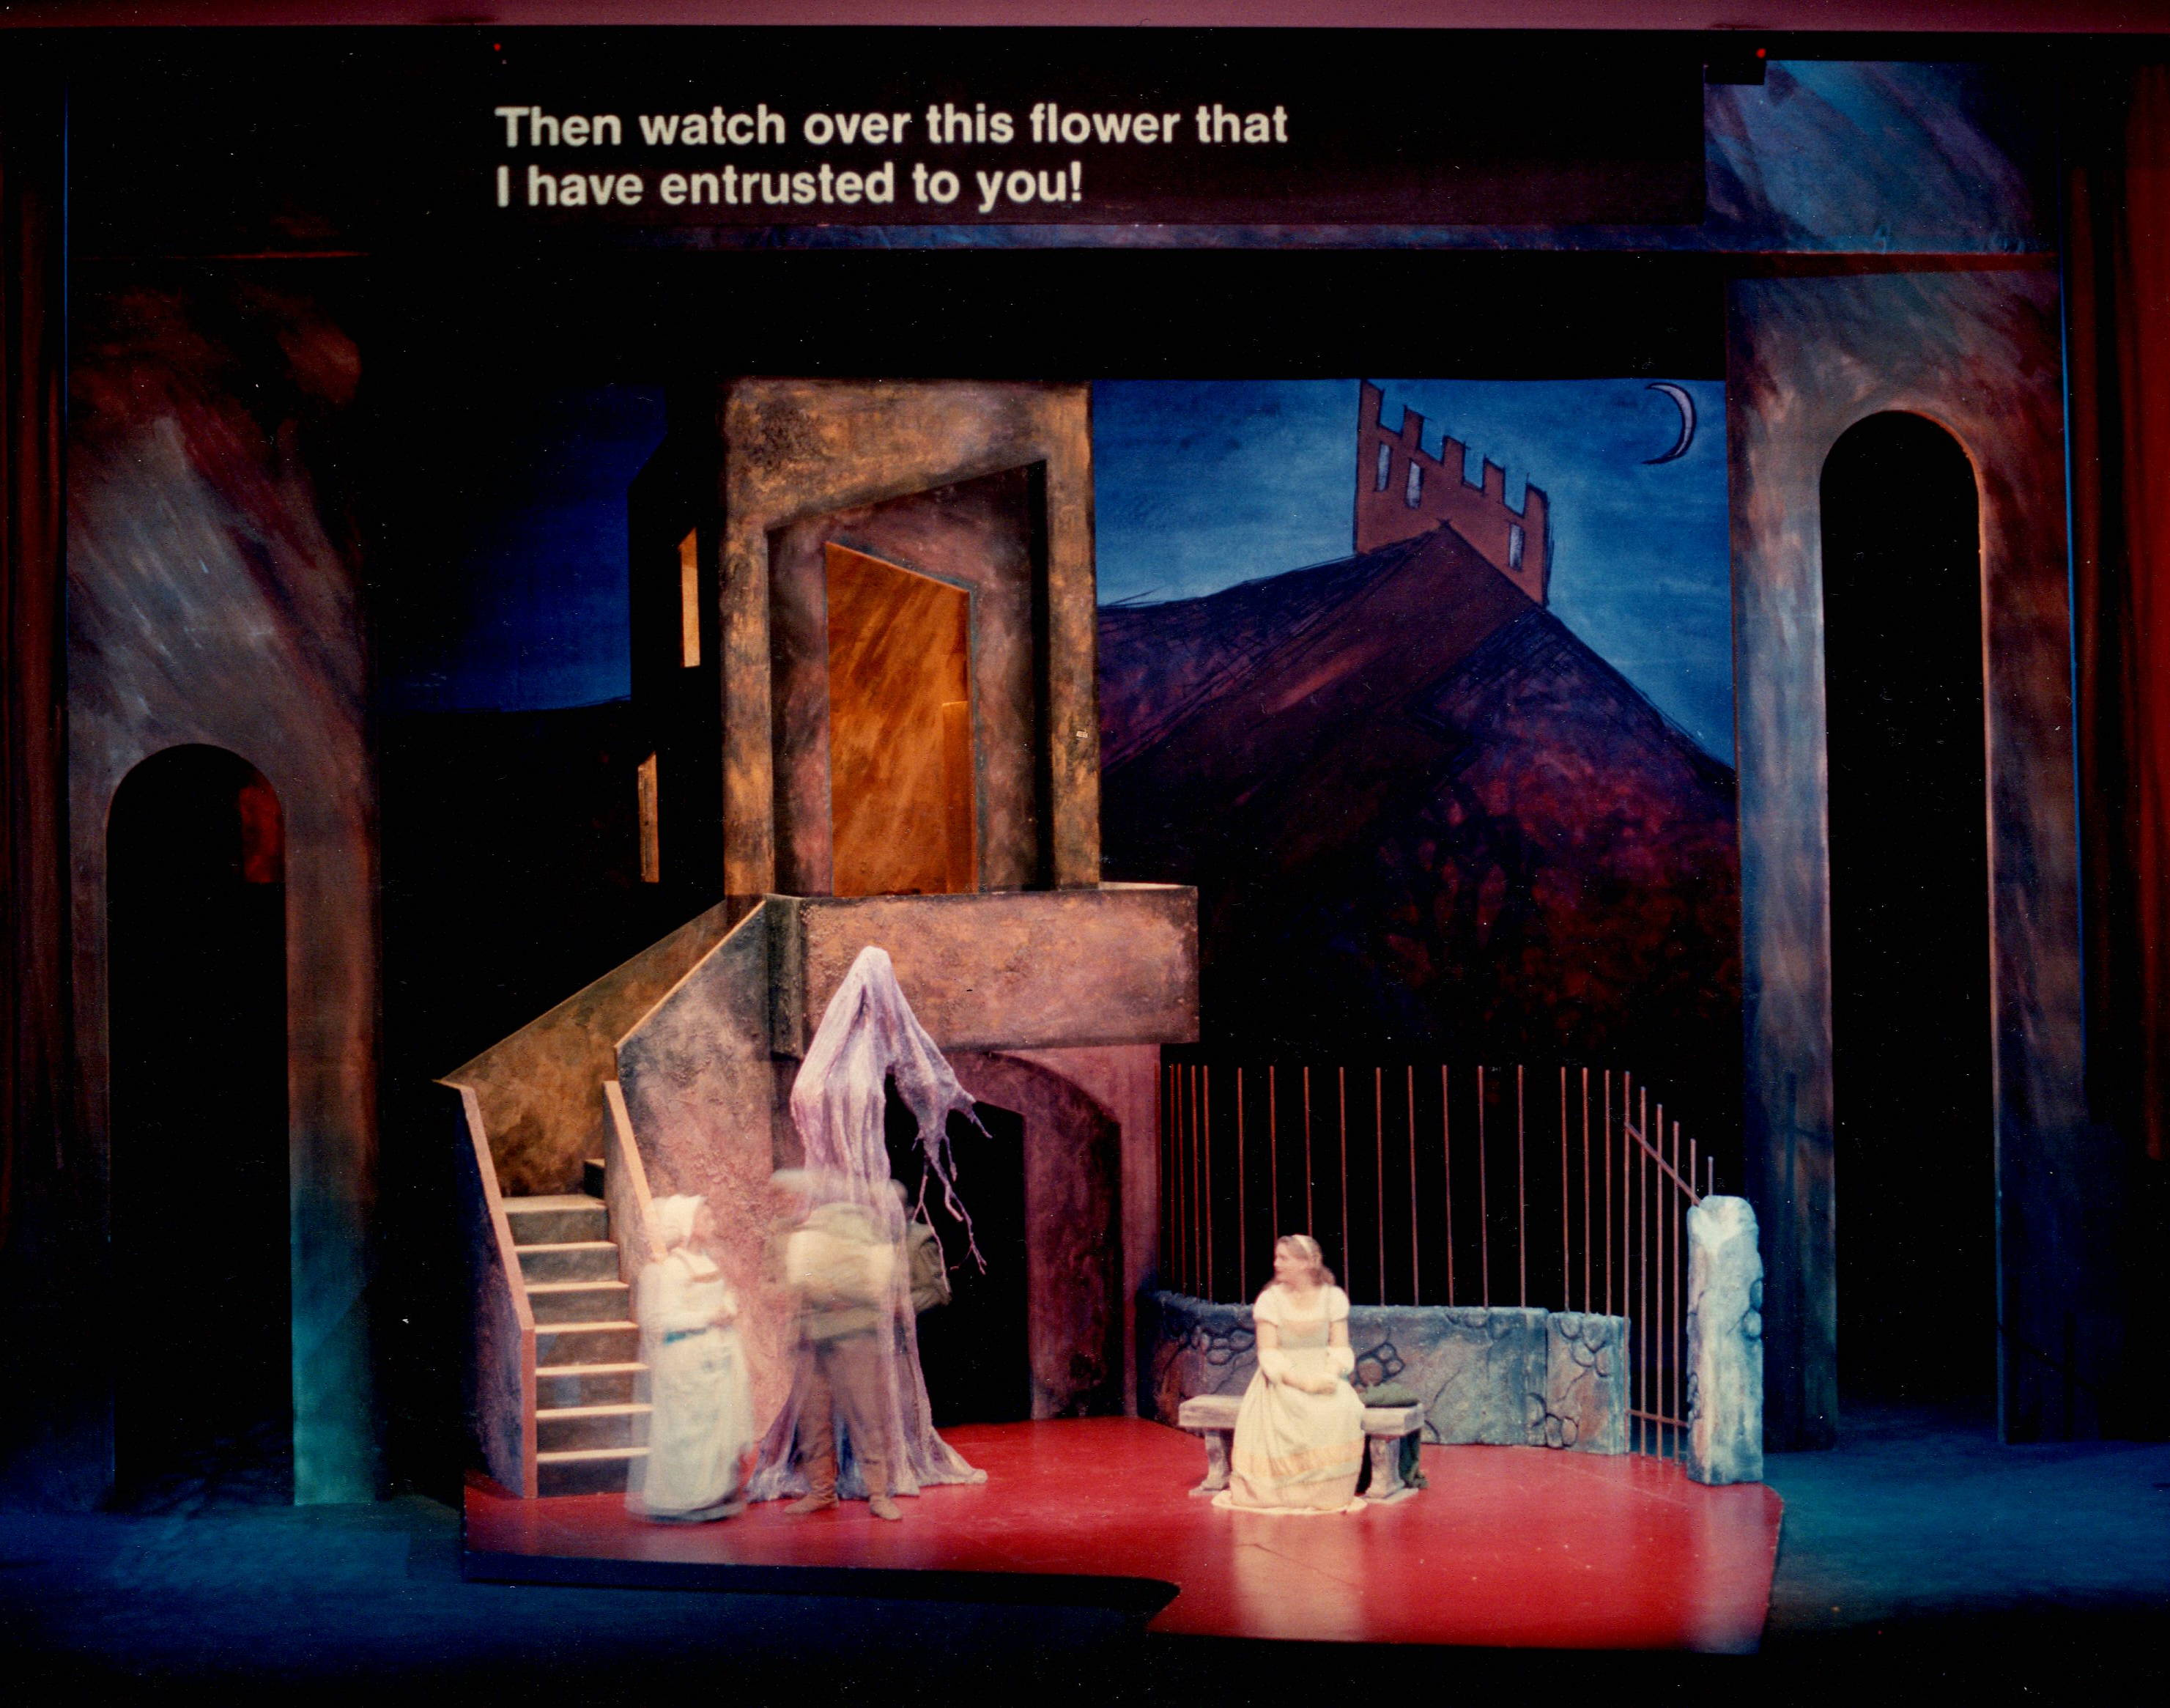 Set Act 1 Scene 2 - Rigoletto by Guiseppe Verdi at the Illinois Opera Theater - Krannert Center for the Performing Arts at University of Illinois (Urbana/Champaign)